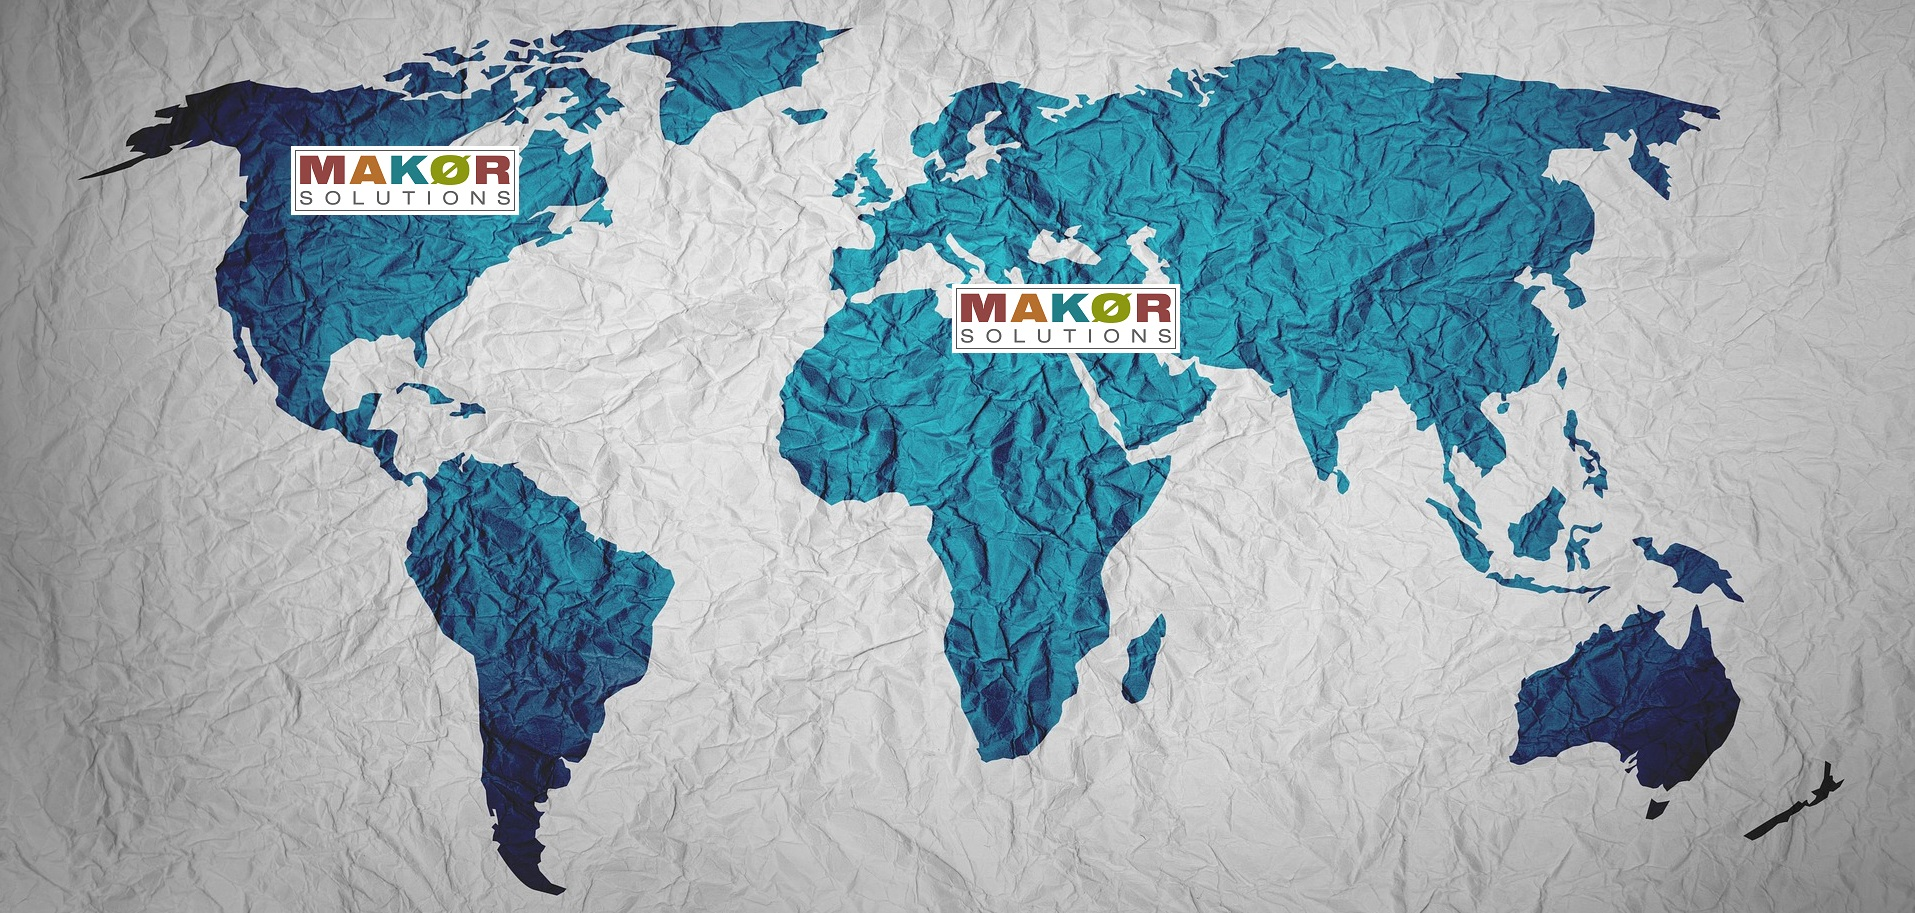 Makor to Expand Operations in Israel as Part of Global Plan